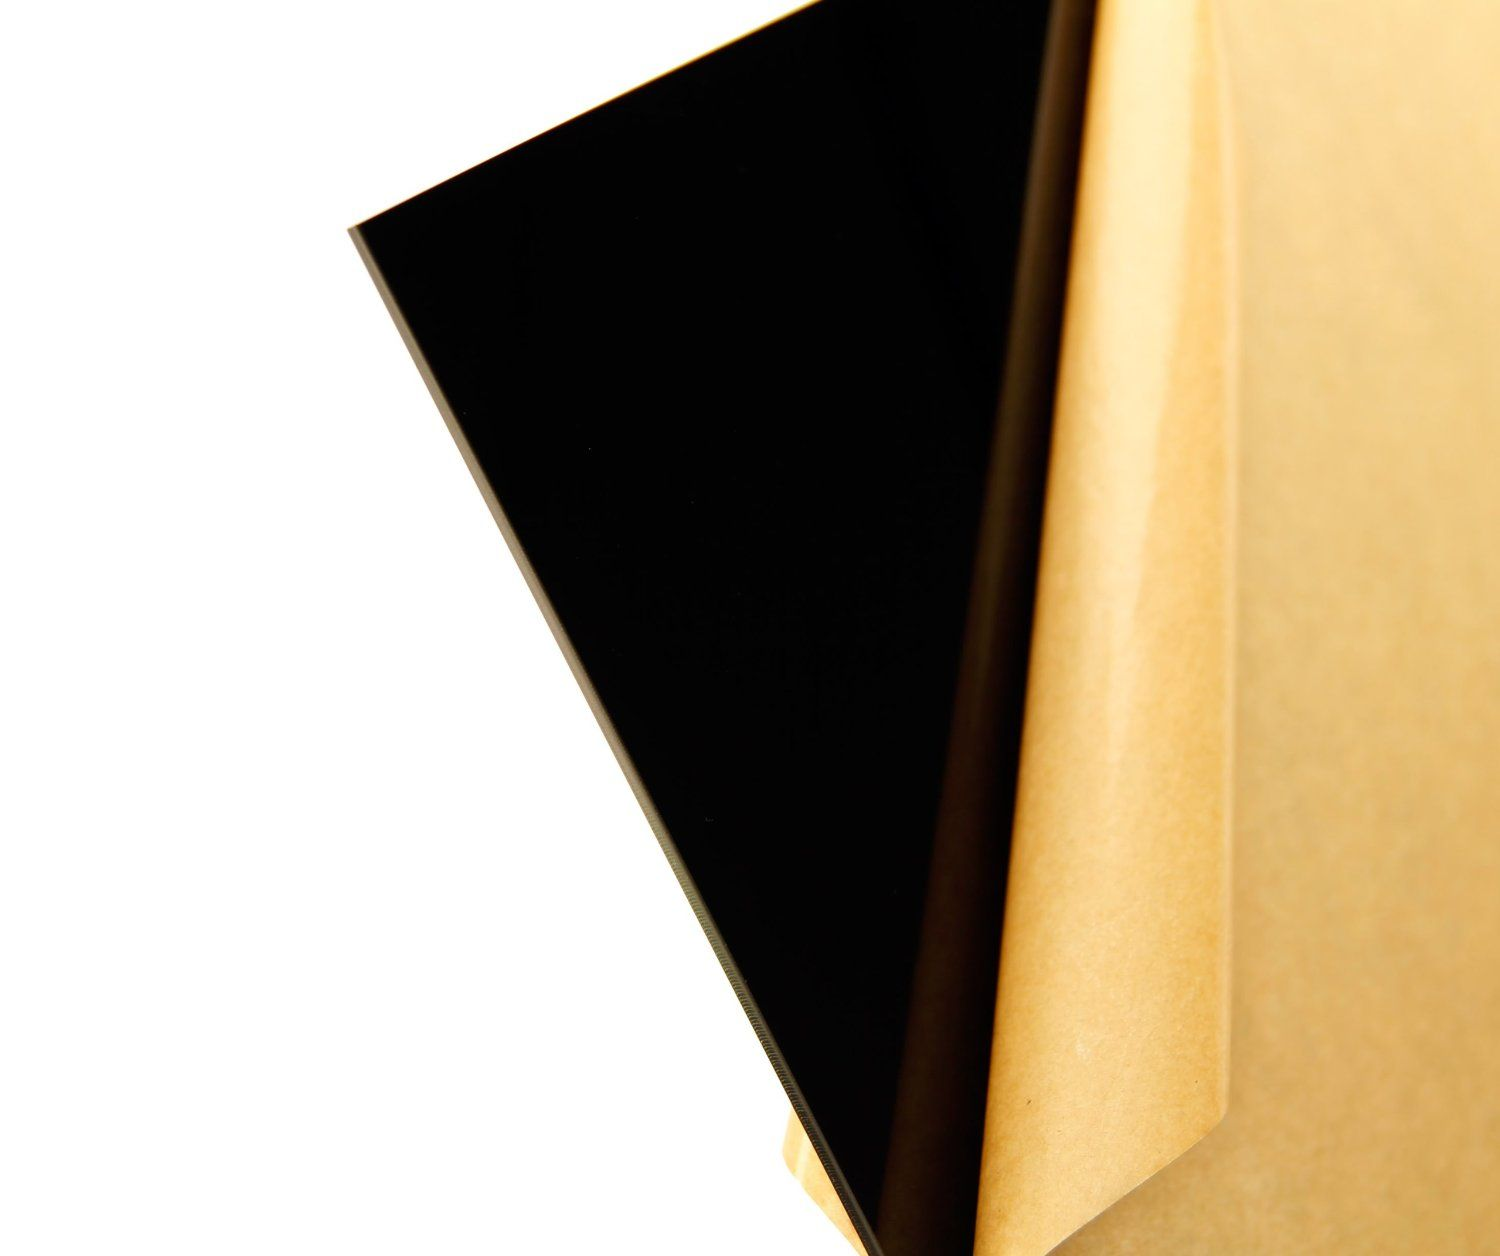 Colored cast acrylic sheet - Cast Acrylic Sheet Translucent Black X X Size Cast Acrylic Is A Lightweight Rigid Plastic That Resists Breakage Better Than Glass And Offers Excellent